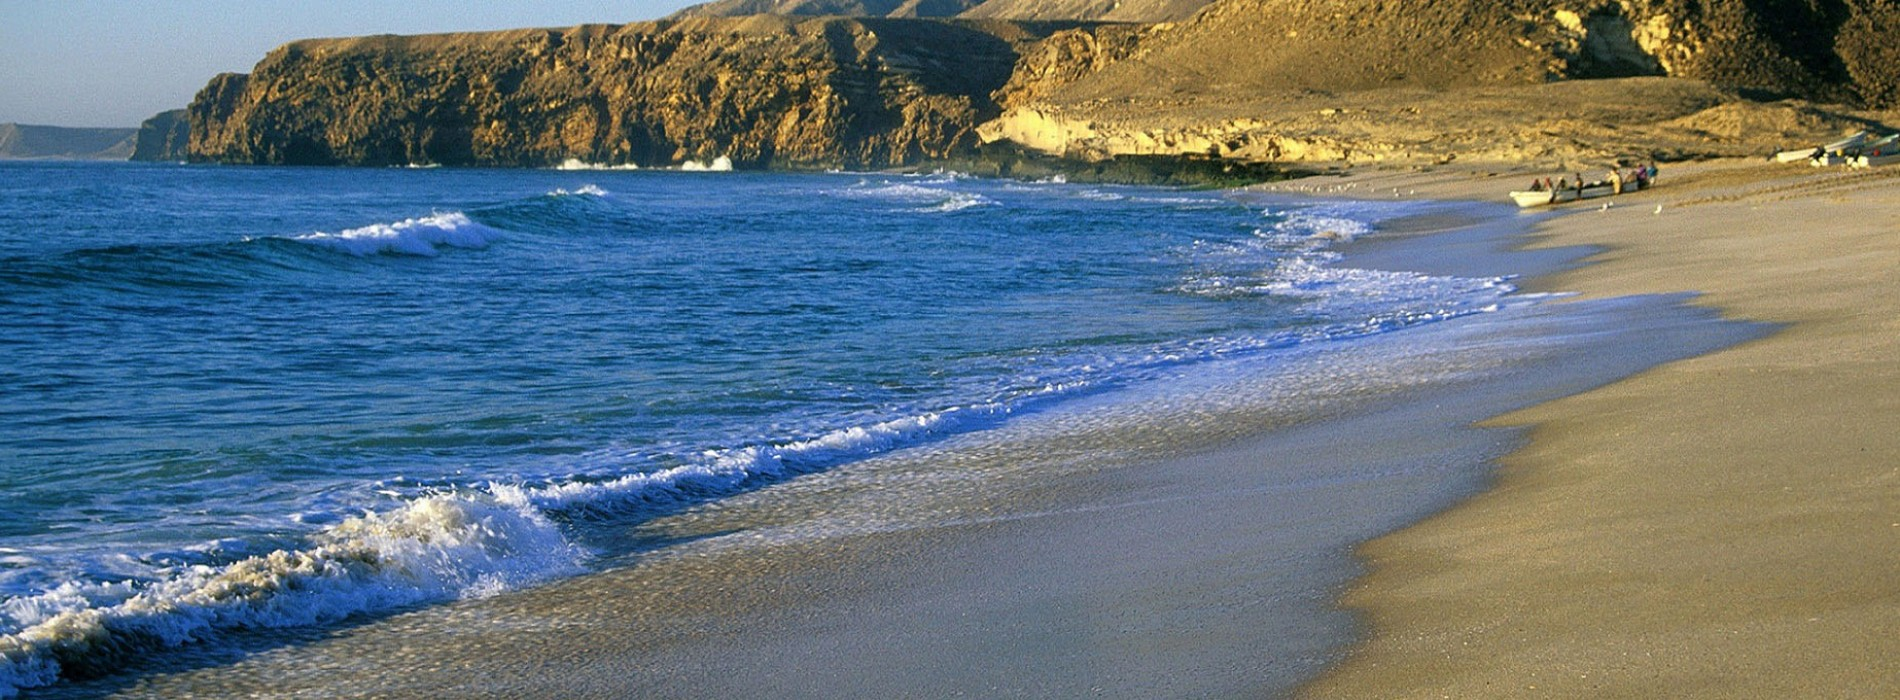 Experience Oman's rich wildlife and nature